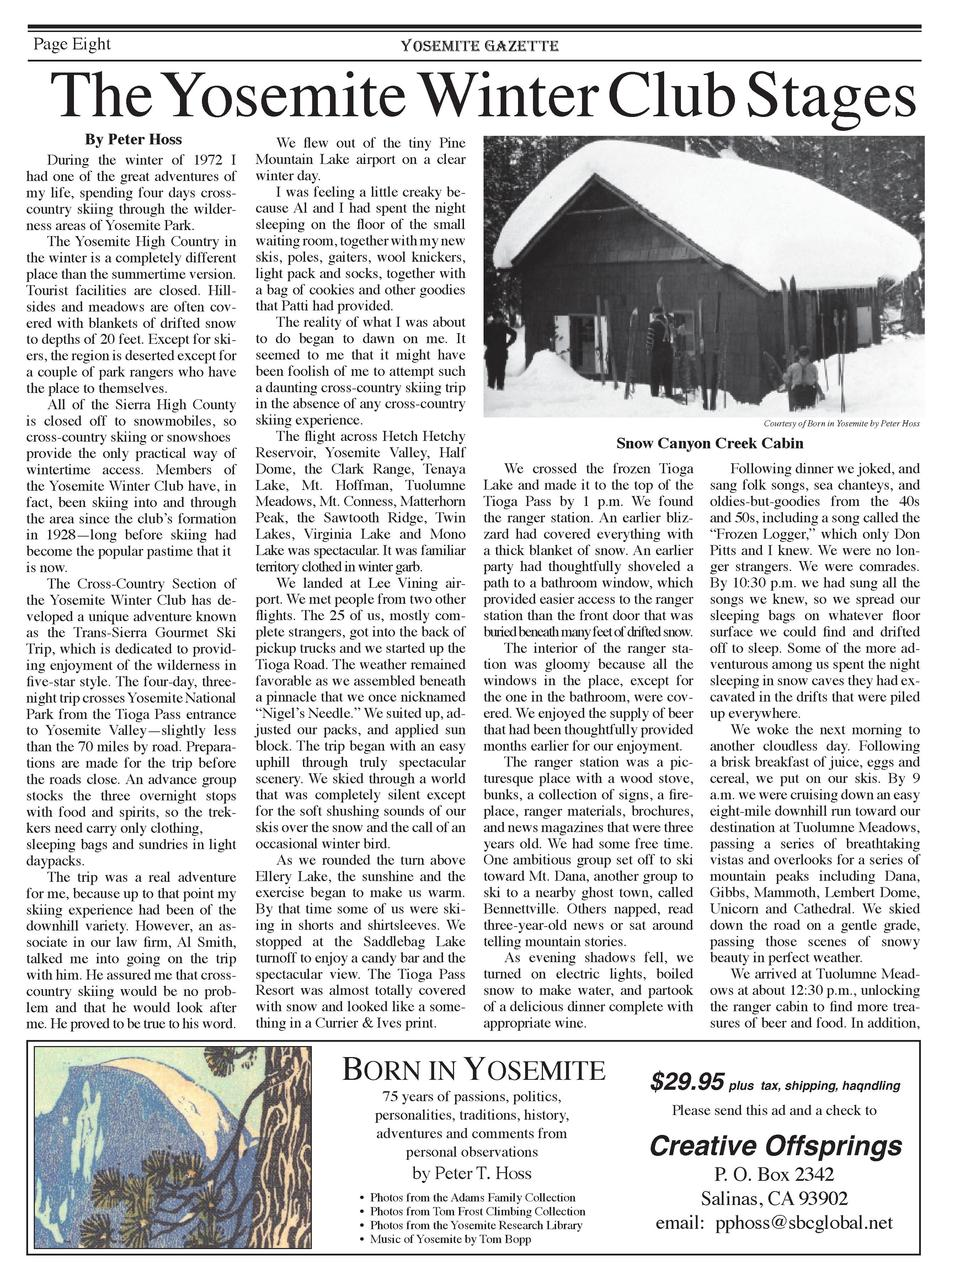 Page Eight  The Yosemite Winter Club Stages By Peter Hoss    During the winter of 1972 I had one of the great adventures o...